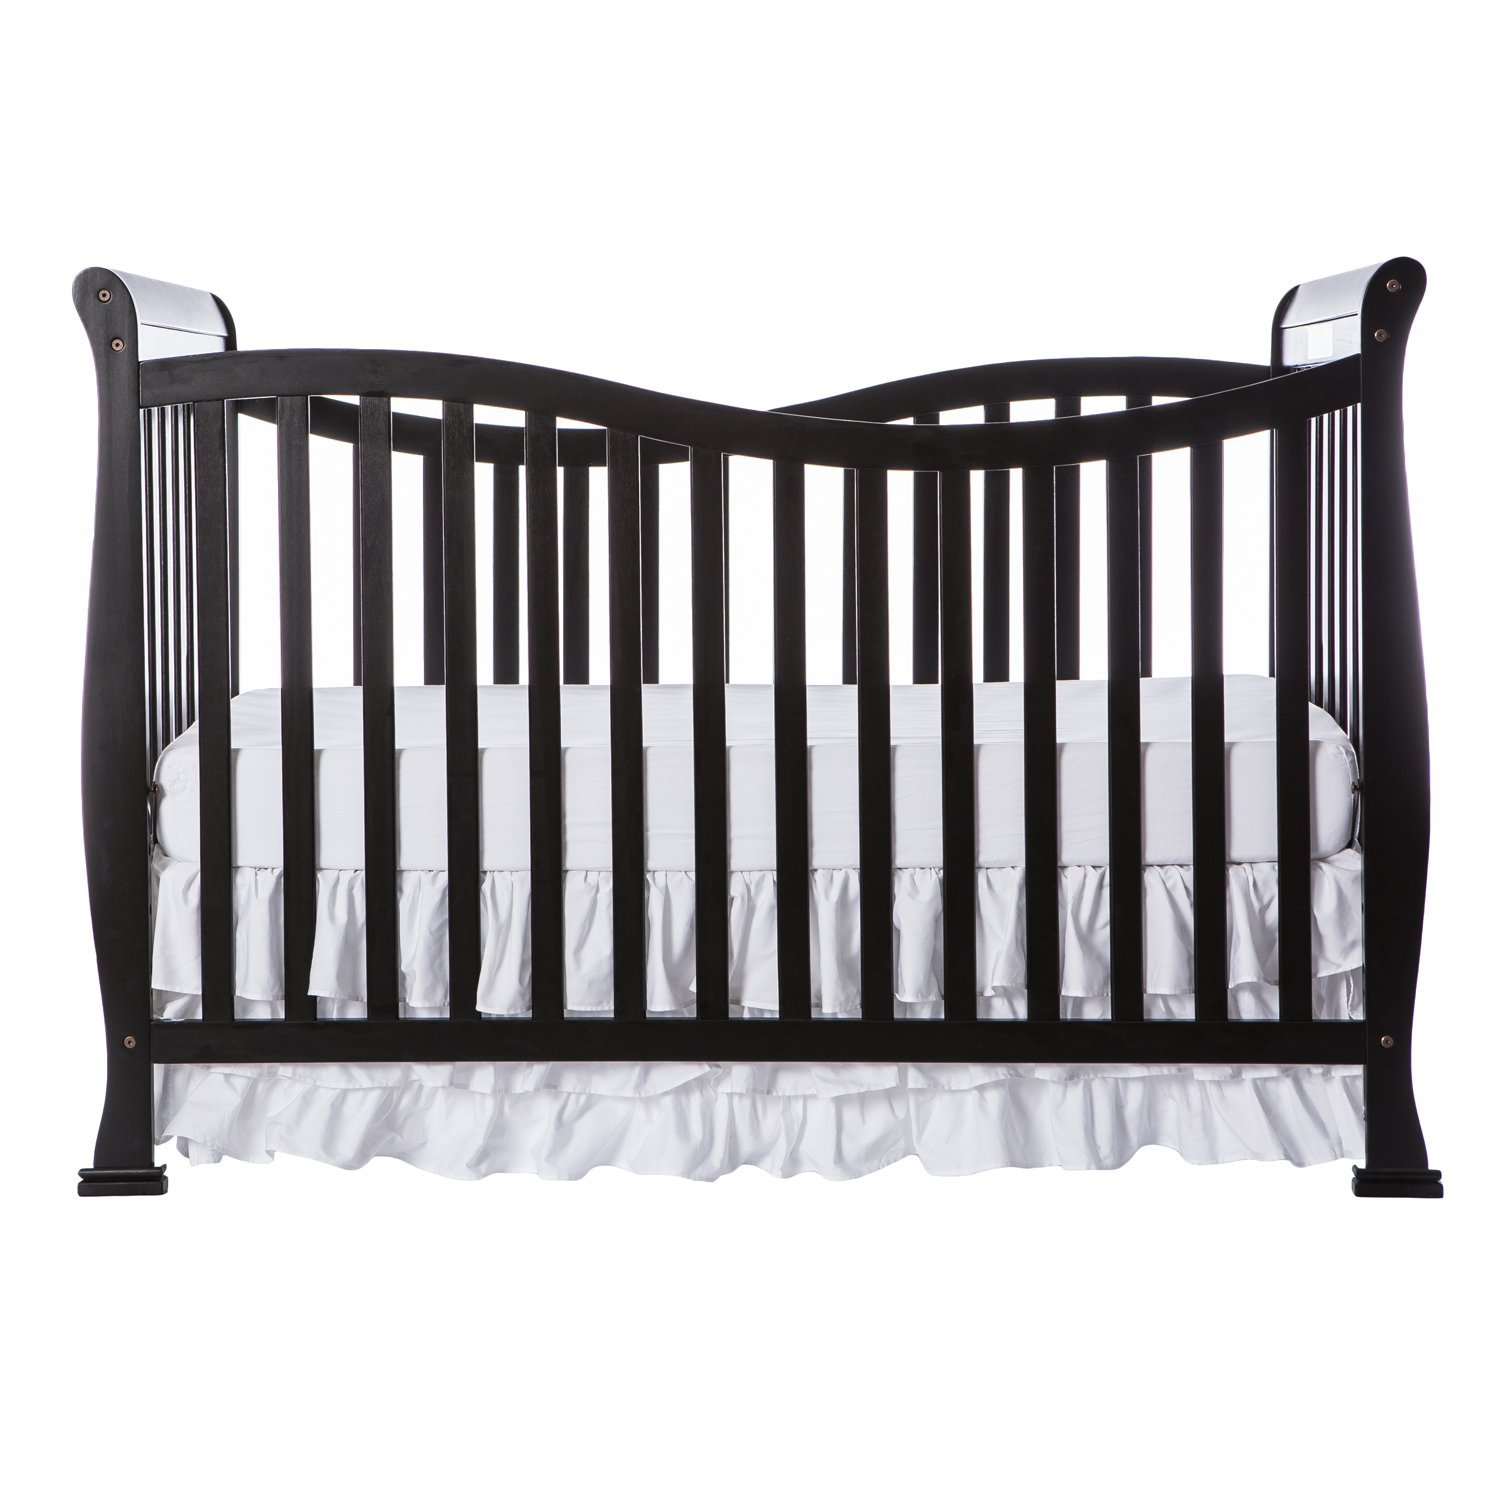 Valtrex 1 gm caplet price.doc - Baby Bed Png Dream On Me 7 In 1 Baby Crib